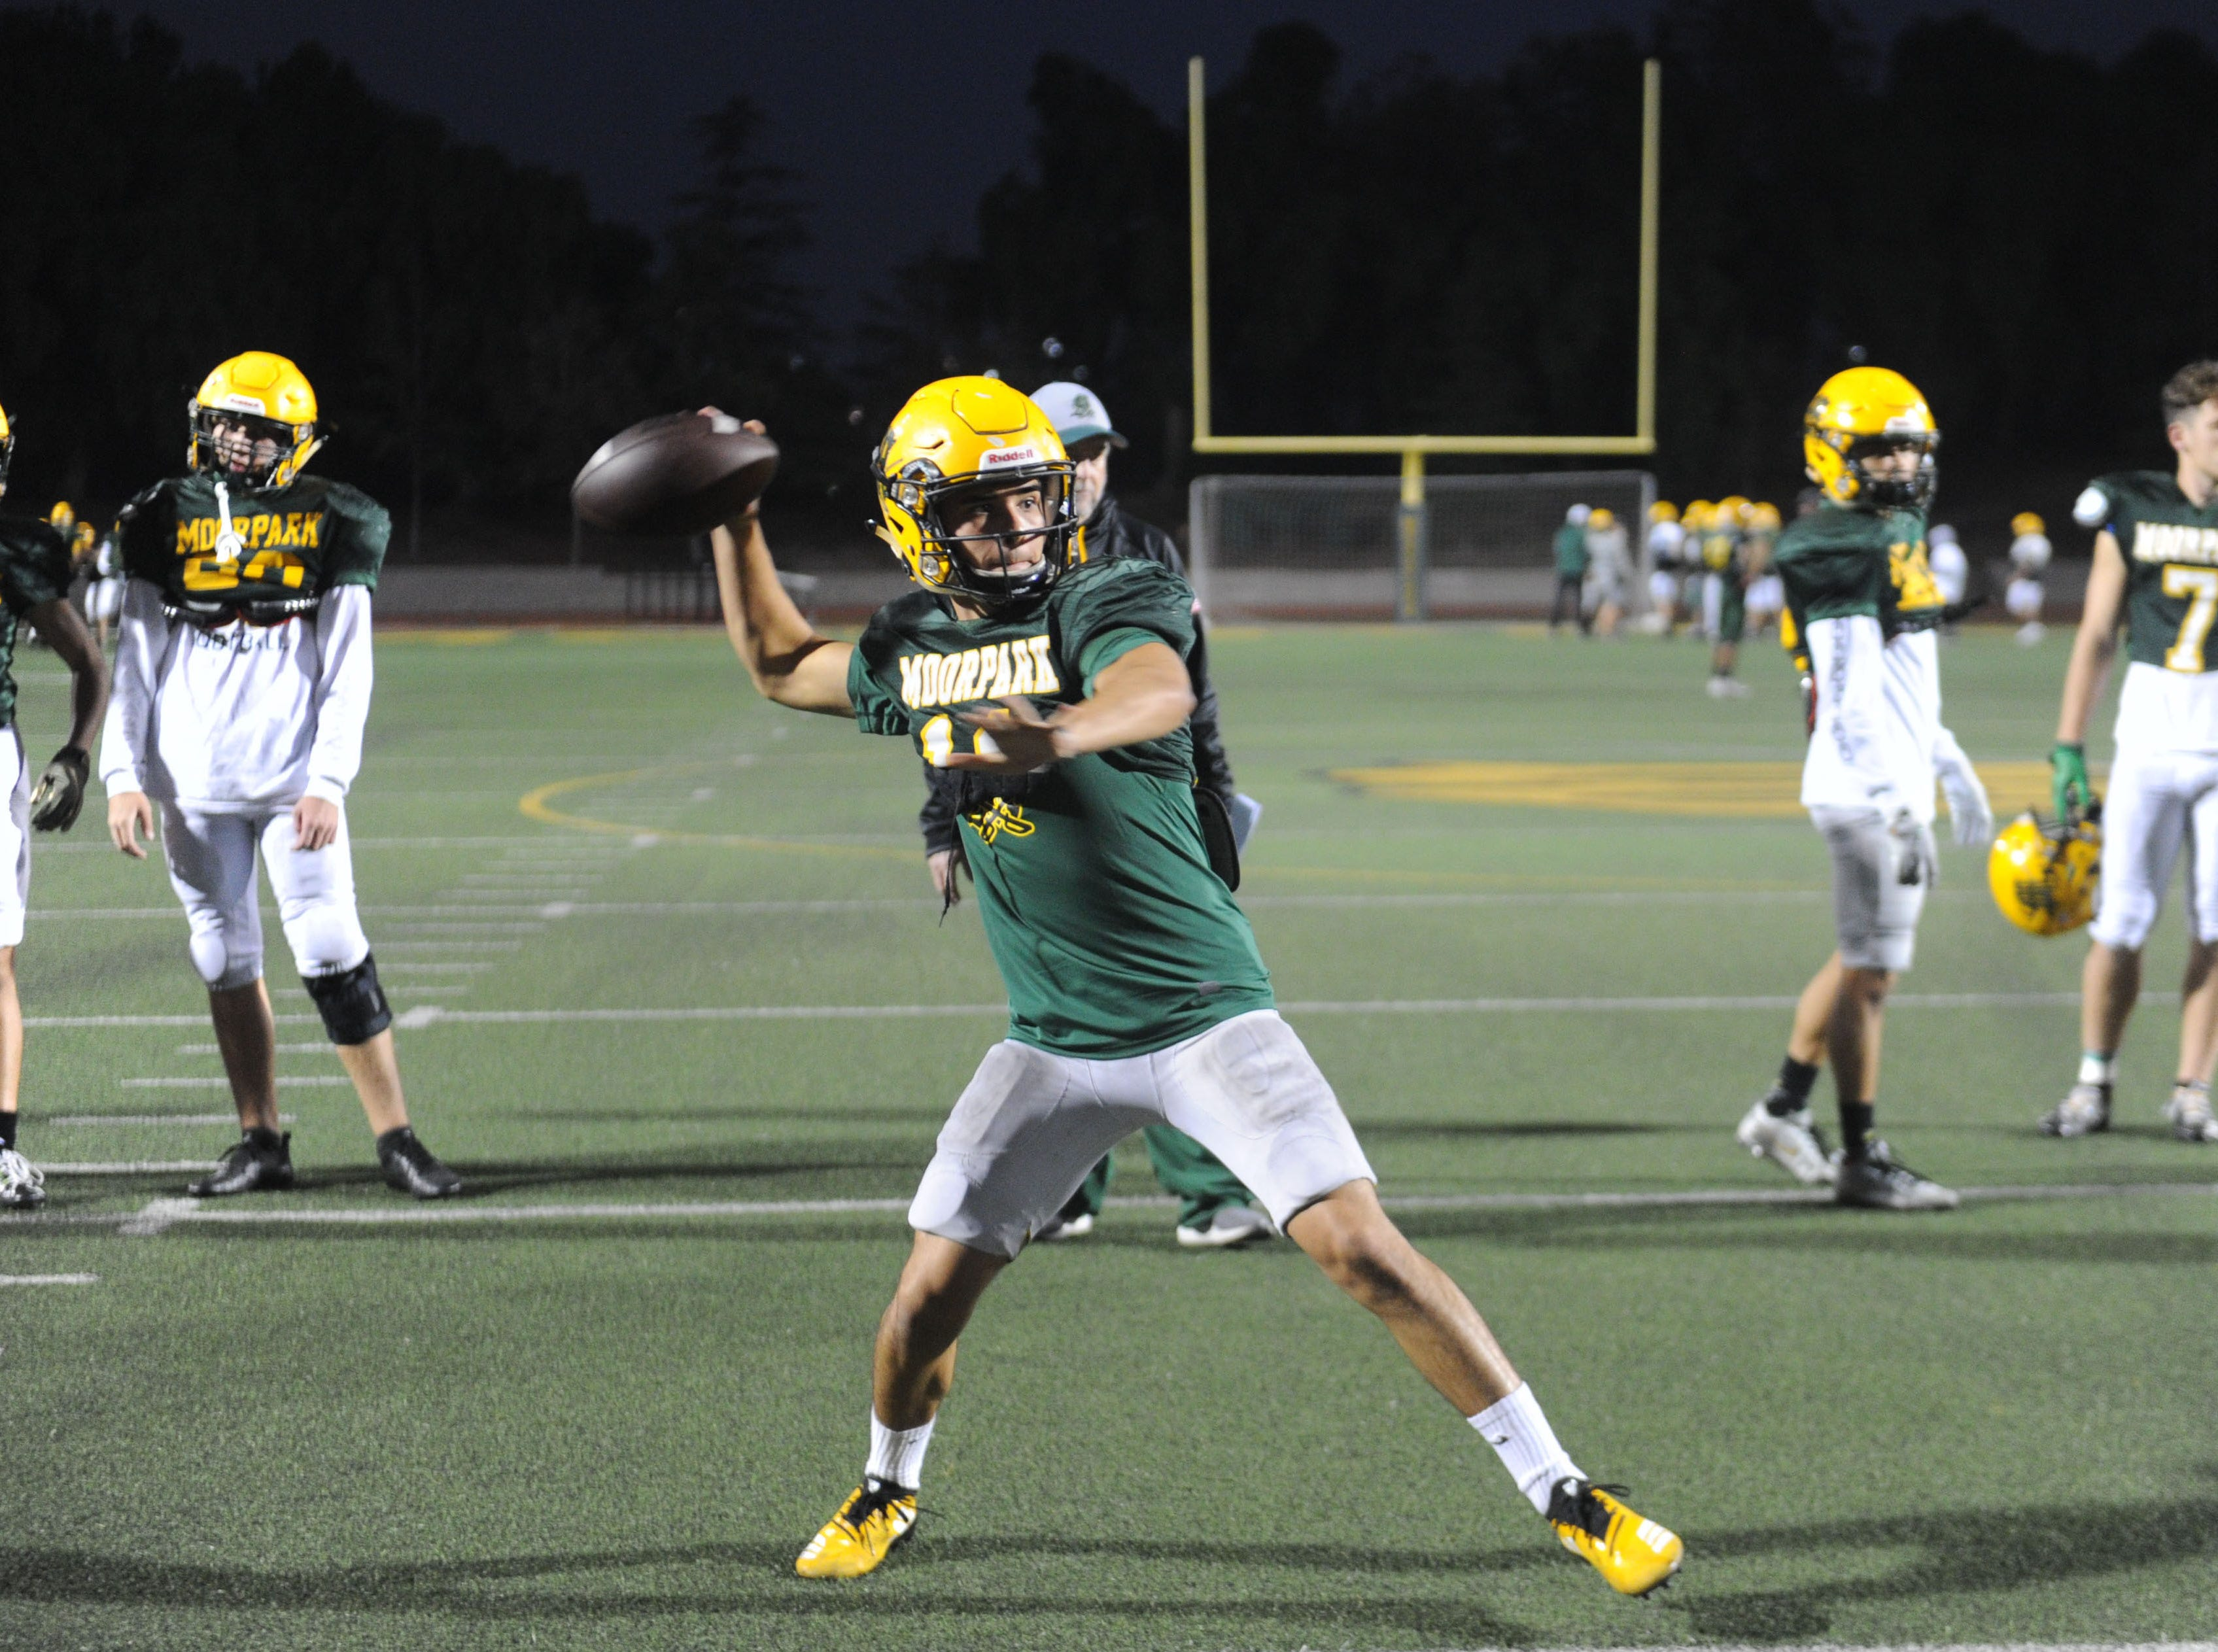 Spencer Varner throws the ball during Moorpark's practice Wednesday. The Musketeers host Sierra Canyon in a Division 3 quarterfinal game Friday night.